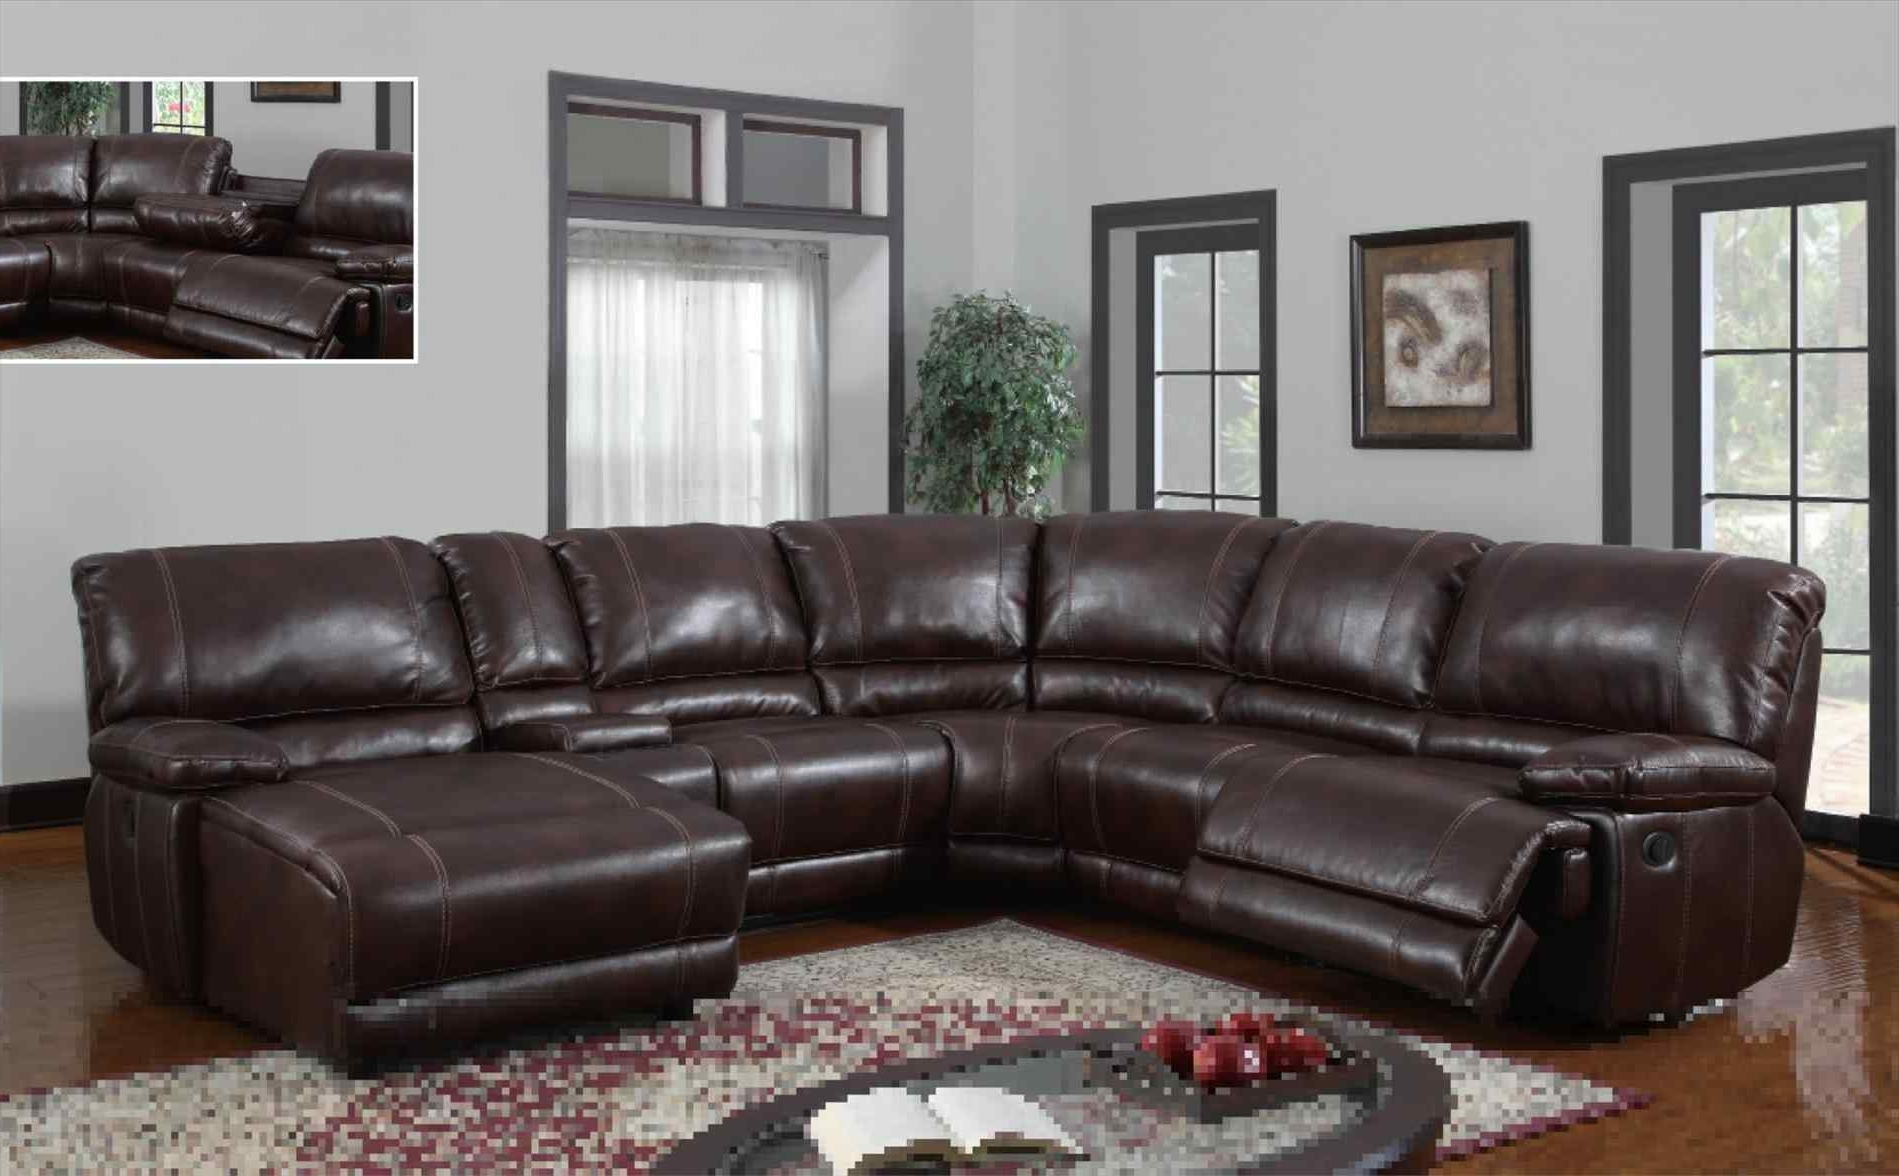 The Images Collection Of Thomasville Sectional Sofa Dining Sets For Most Popular Thomasville Sectional Sofas (View 14 of 20)